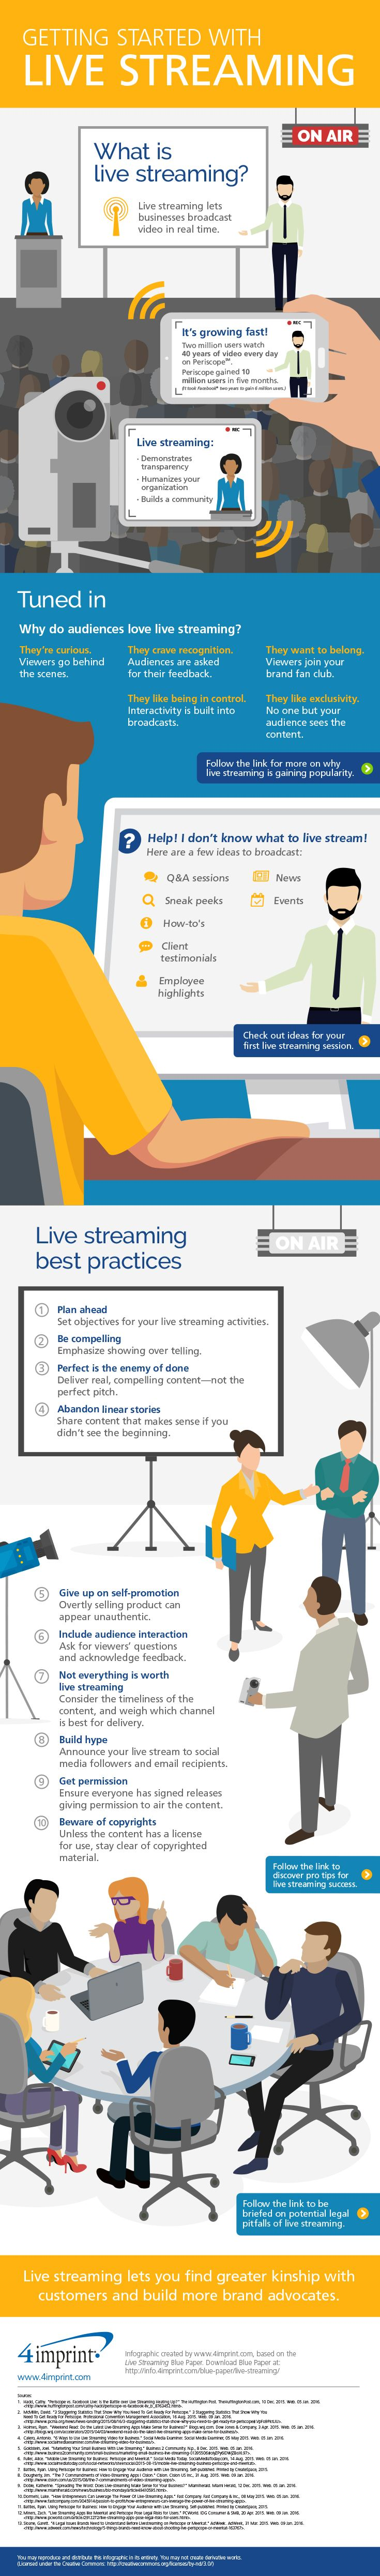 This infographic provides examples of what businesses can live stream and shares best practices in live streaming.